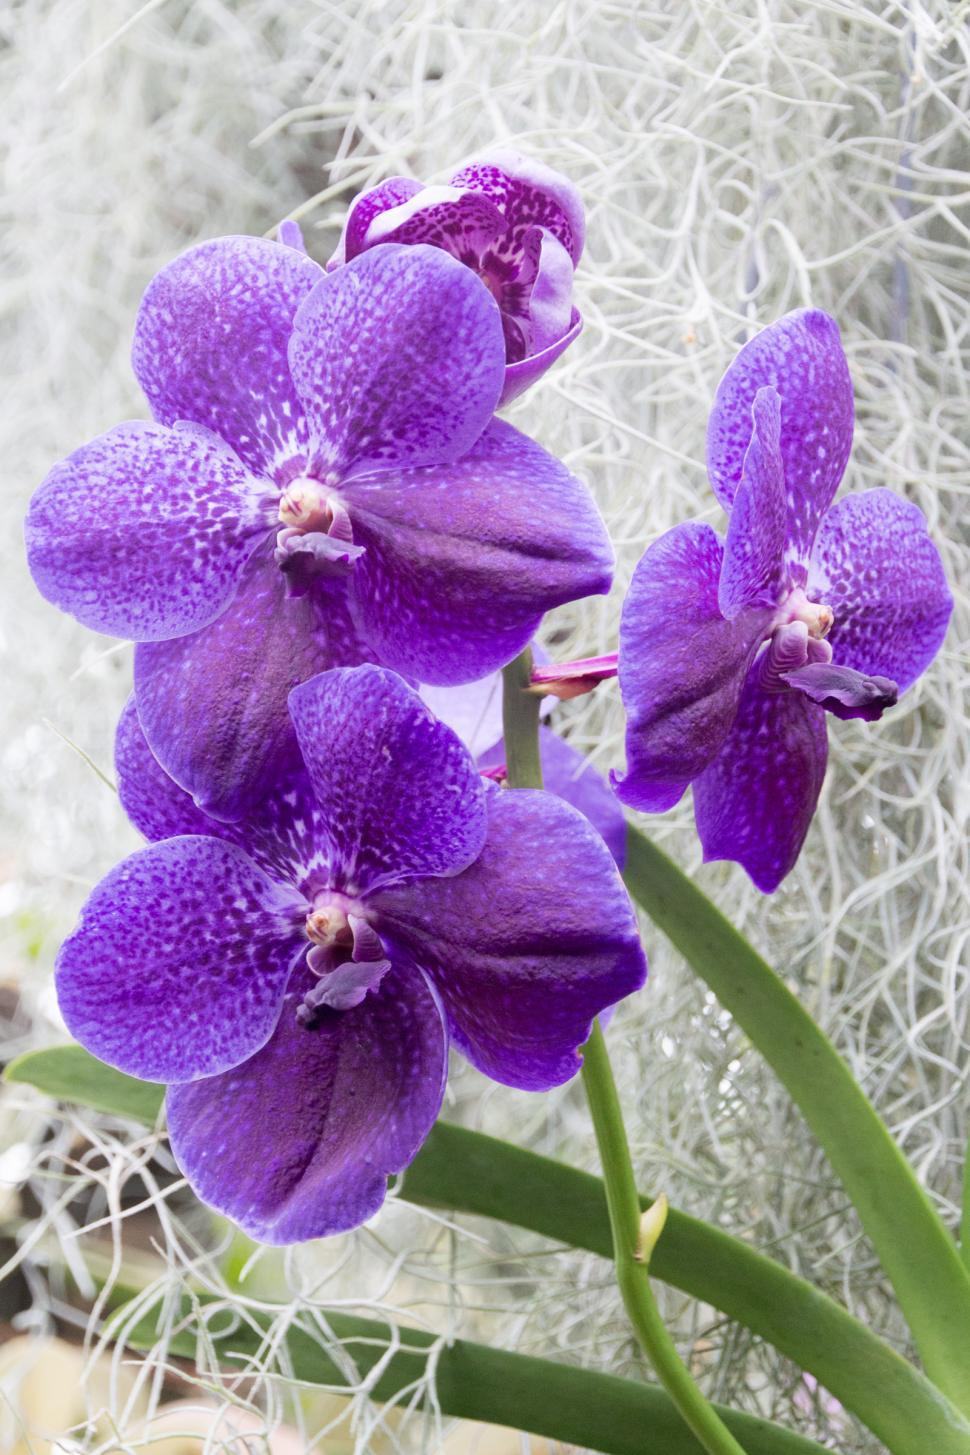 Free Stock Photo Of Cluster Of Blue Vanda Orchid Flowers Online Download Latest Free Images And Free Illustrations